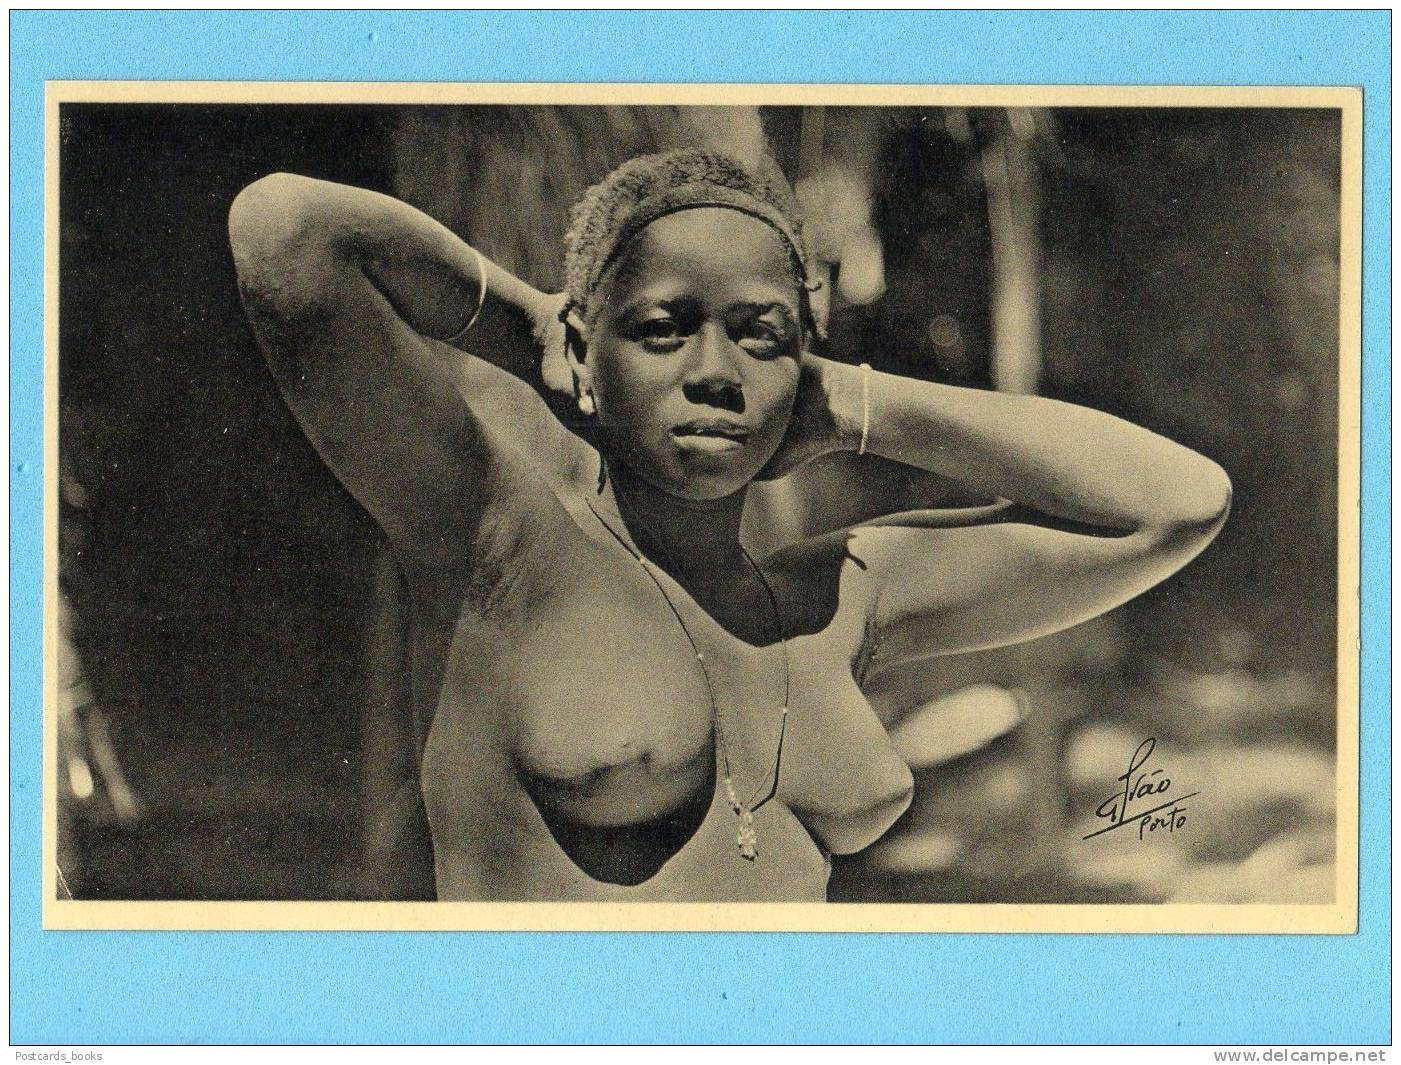 naked colonial women pics